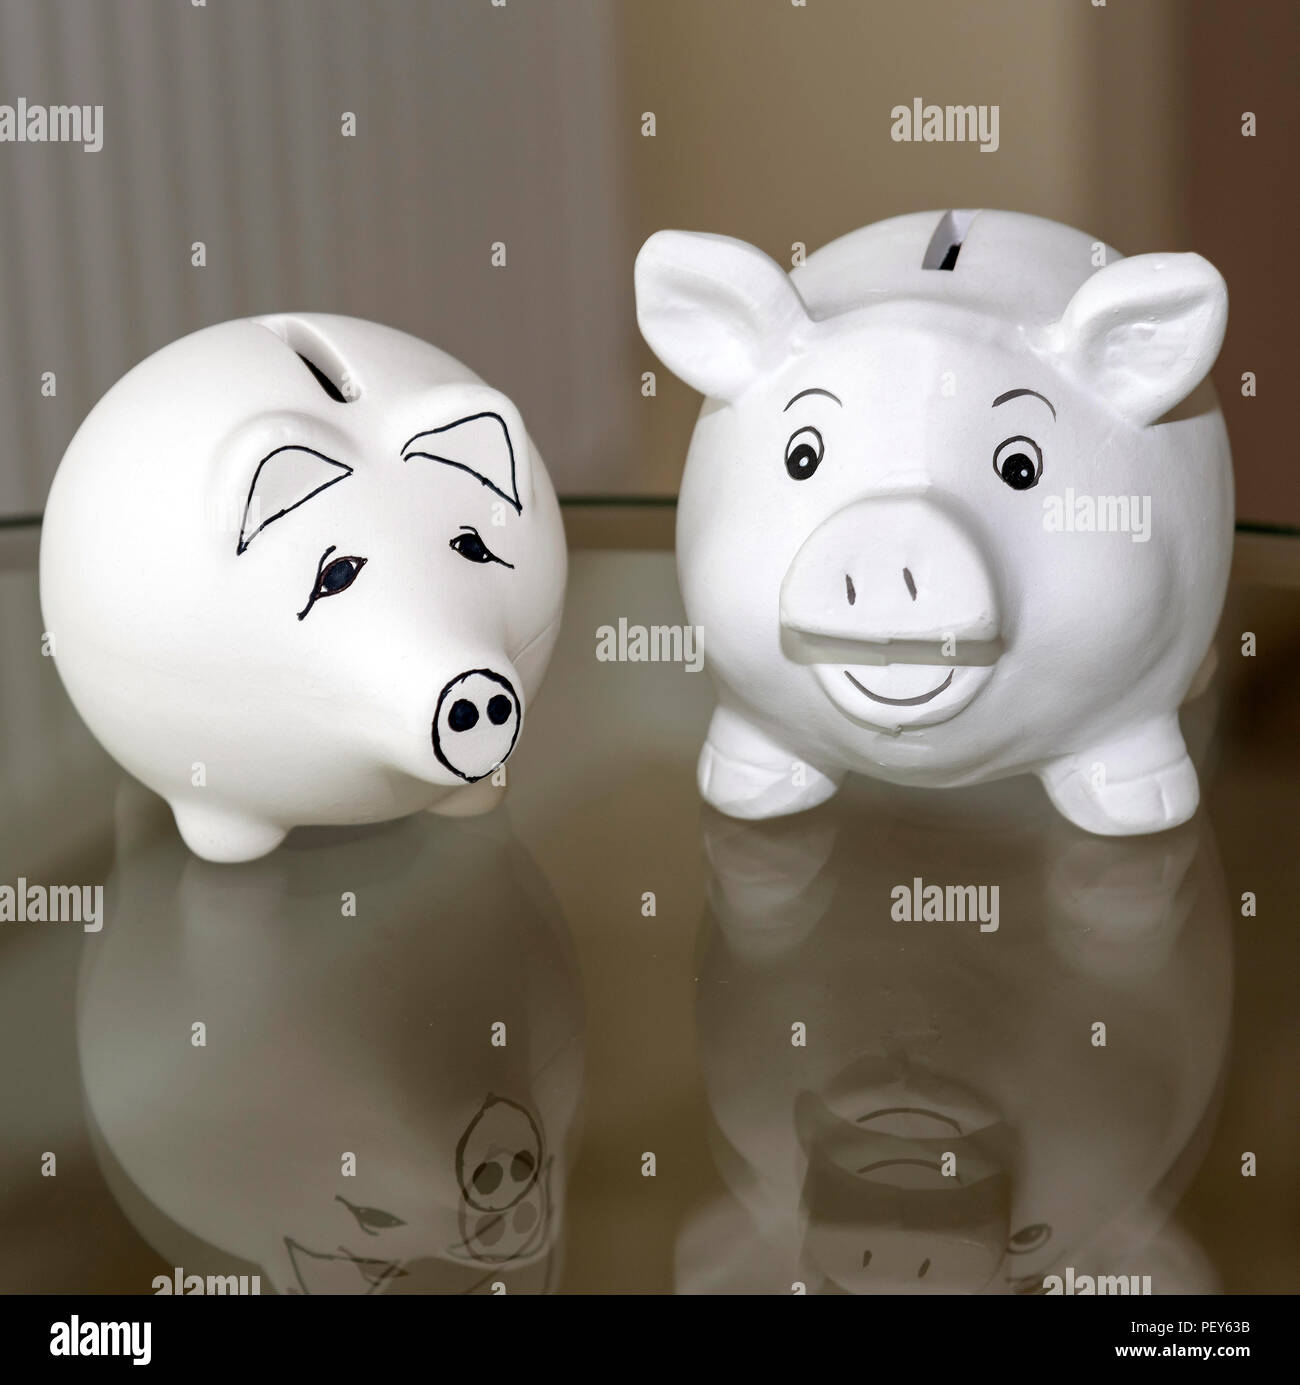 Two Piggy banks used for saving money. Stock Photo